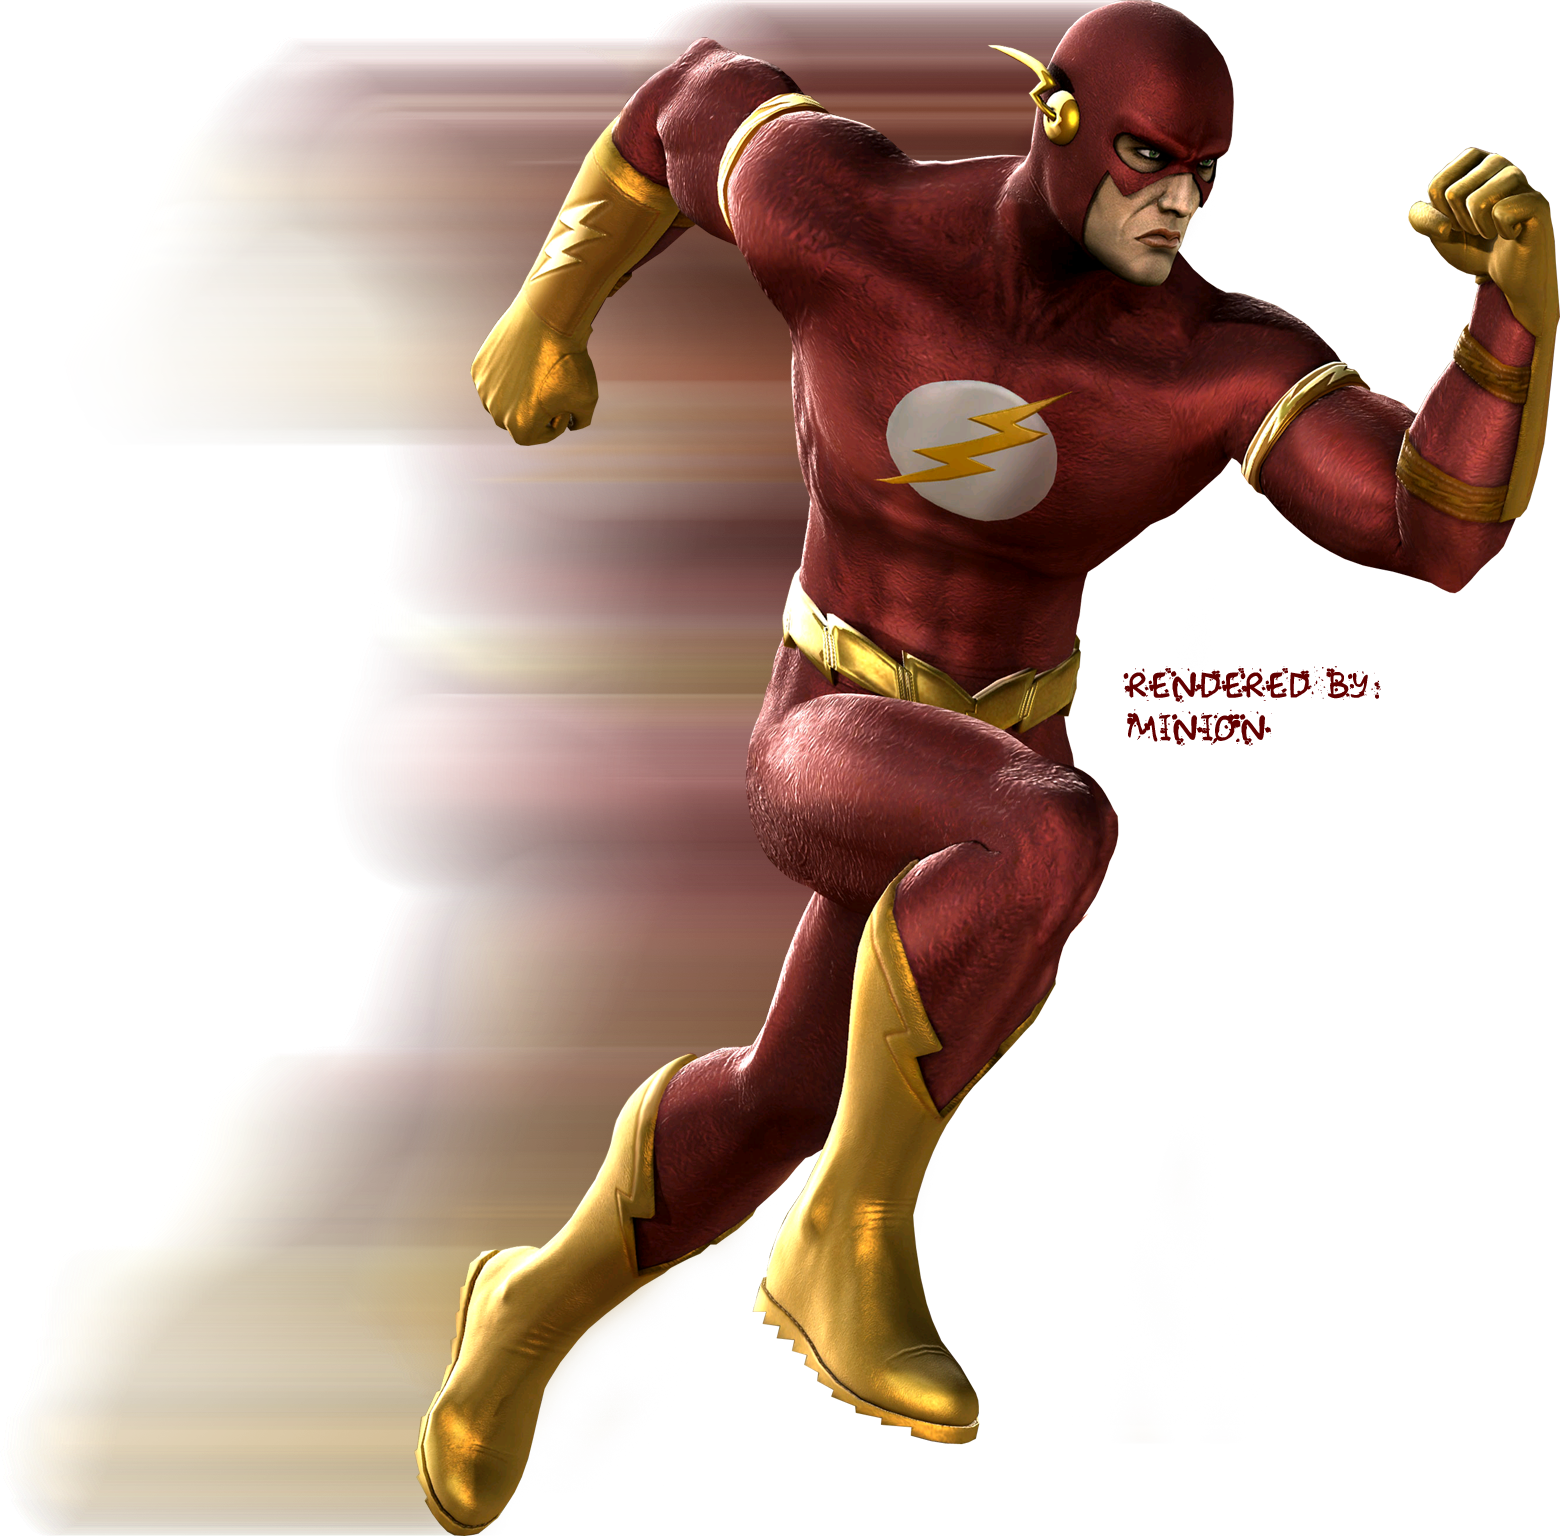 Flash running png. Image rocksteady game default